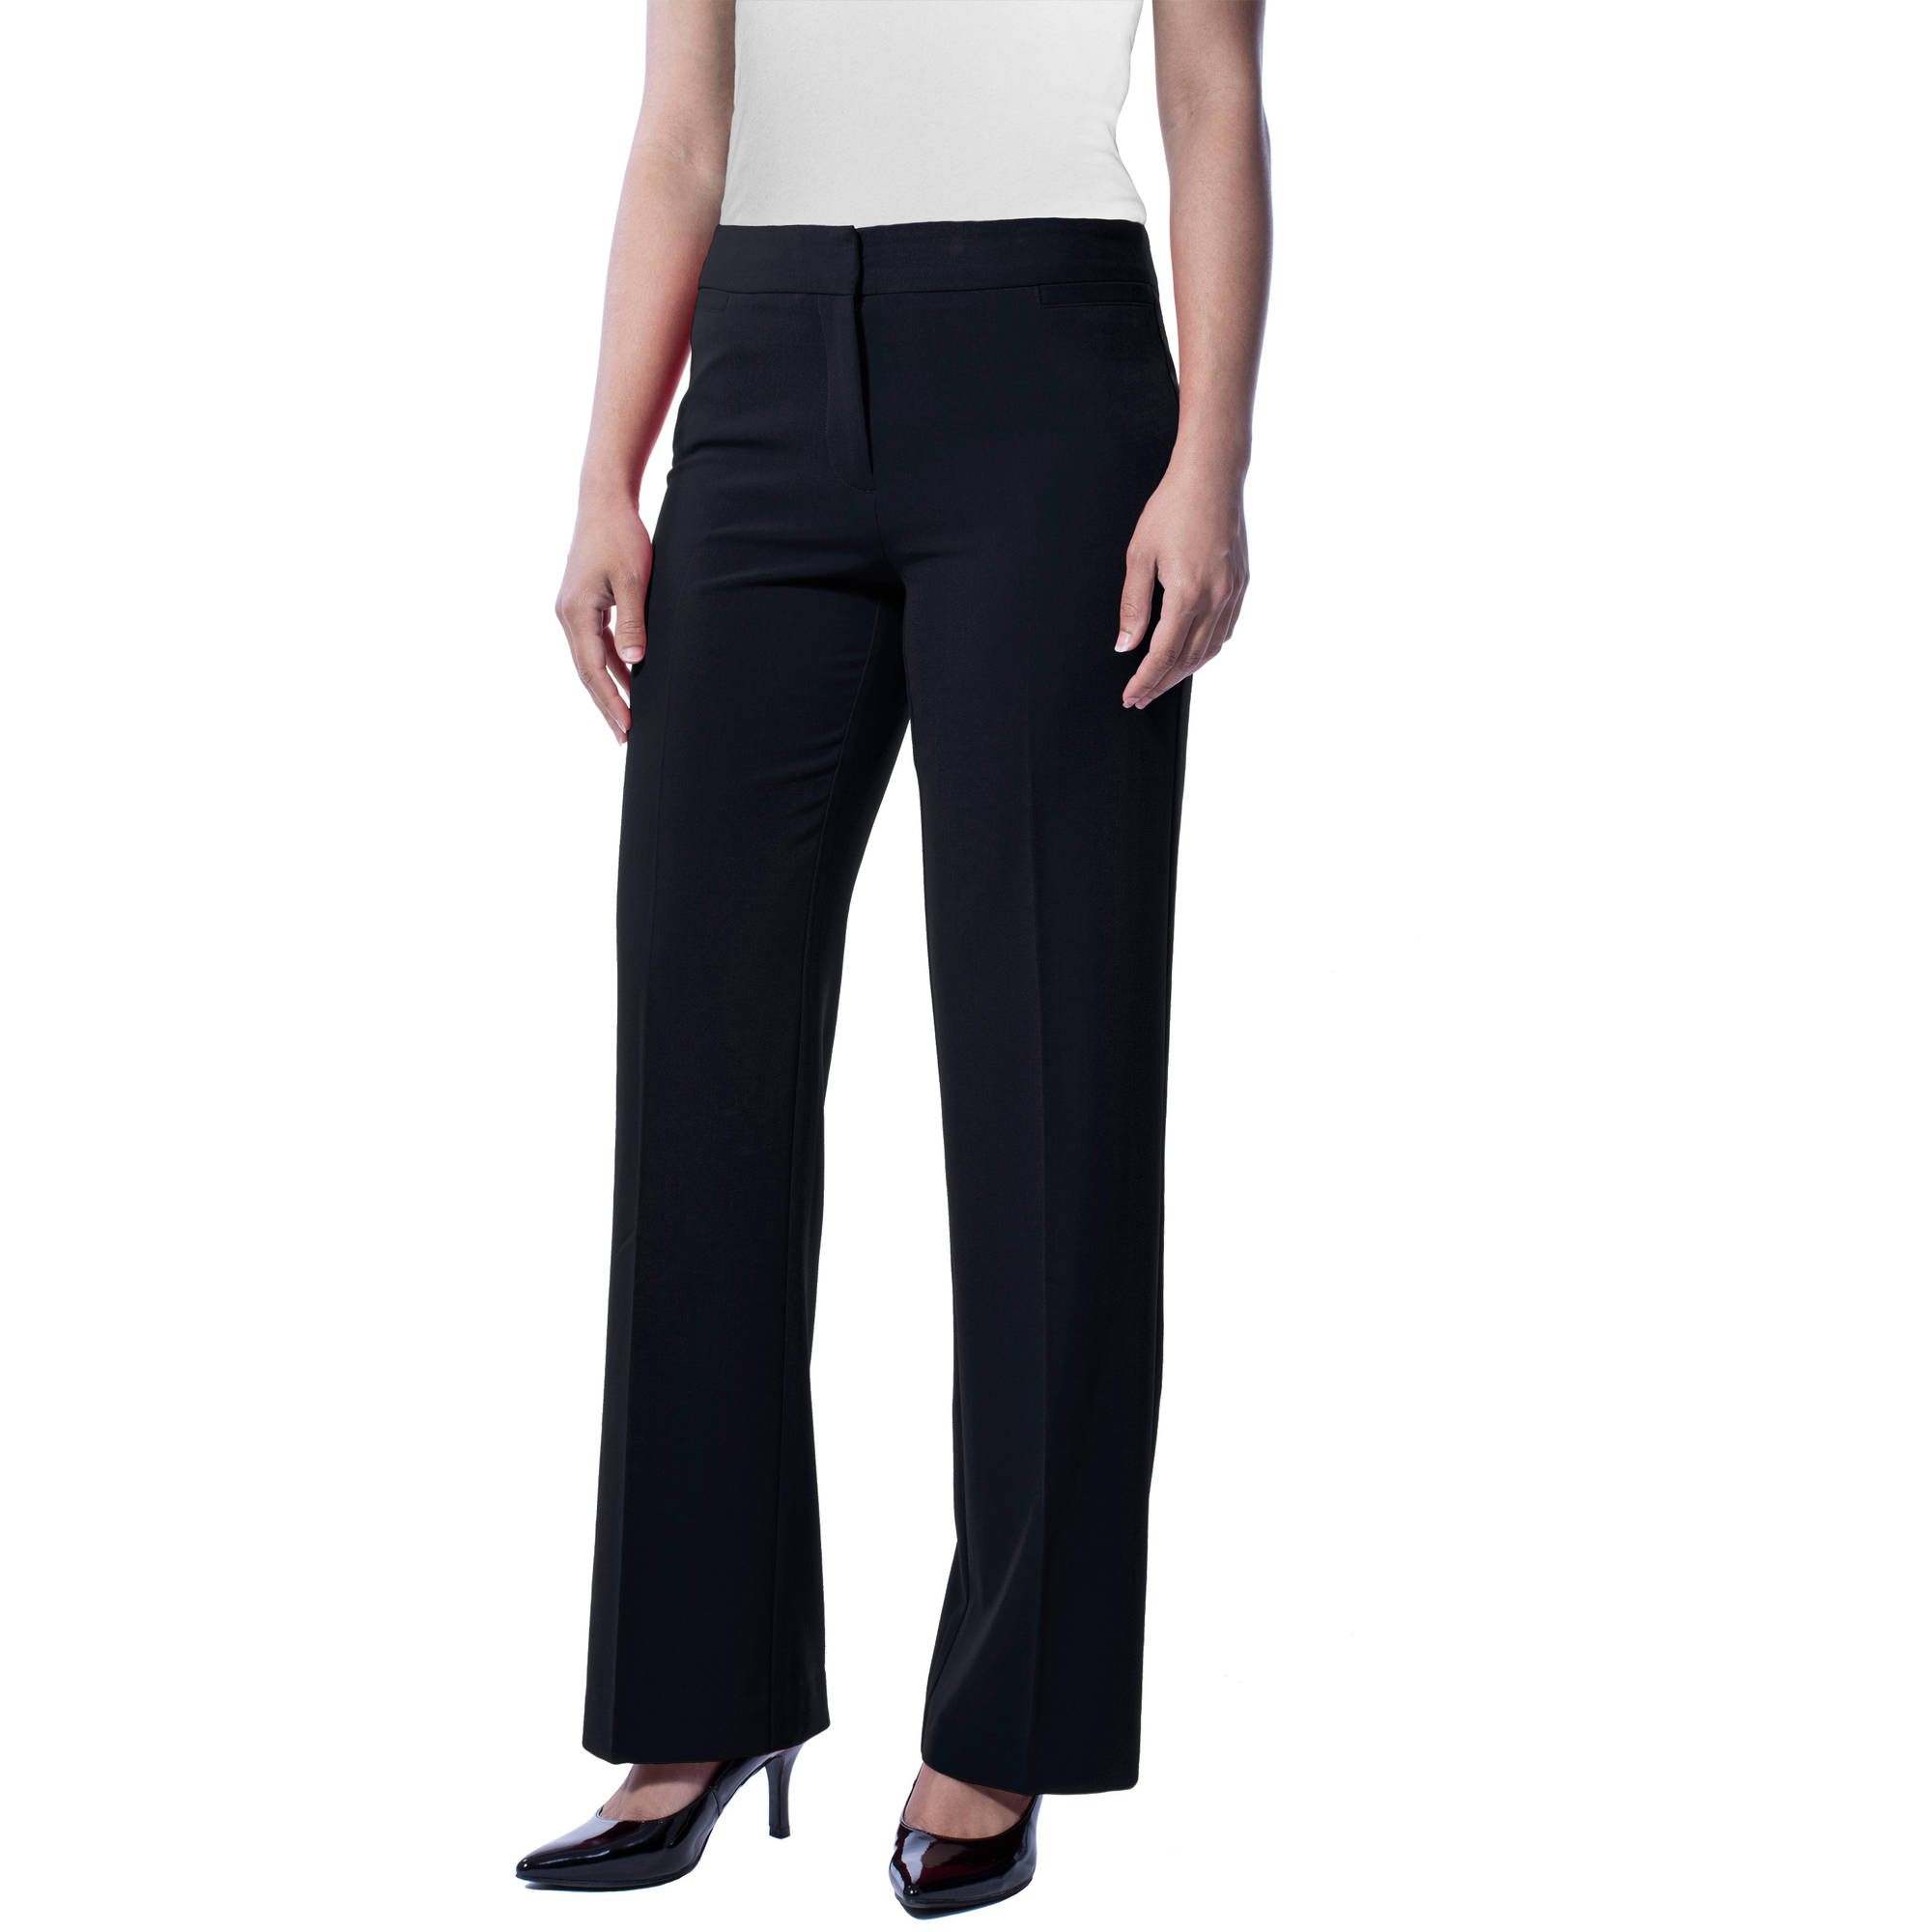 Danskin Now Women's Dri-More Core Bootcut Pants - Walmart.com